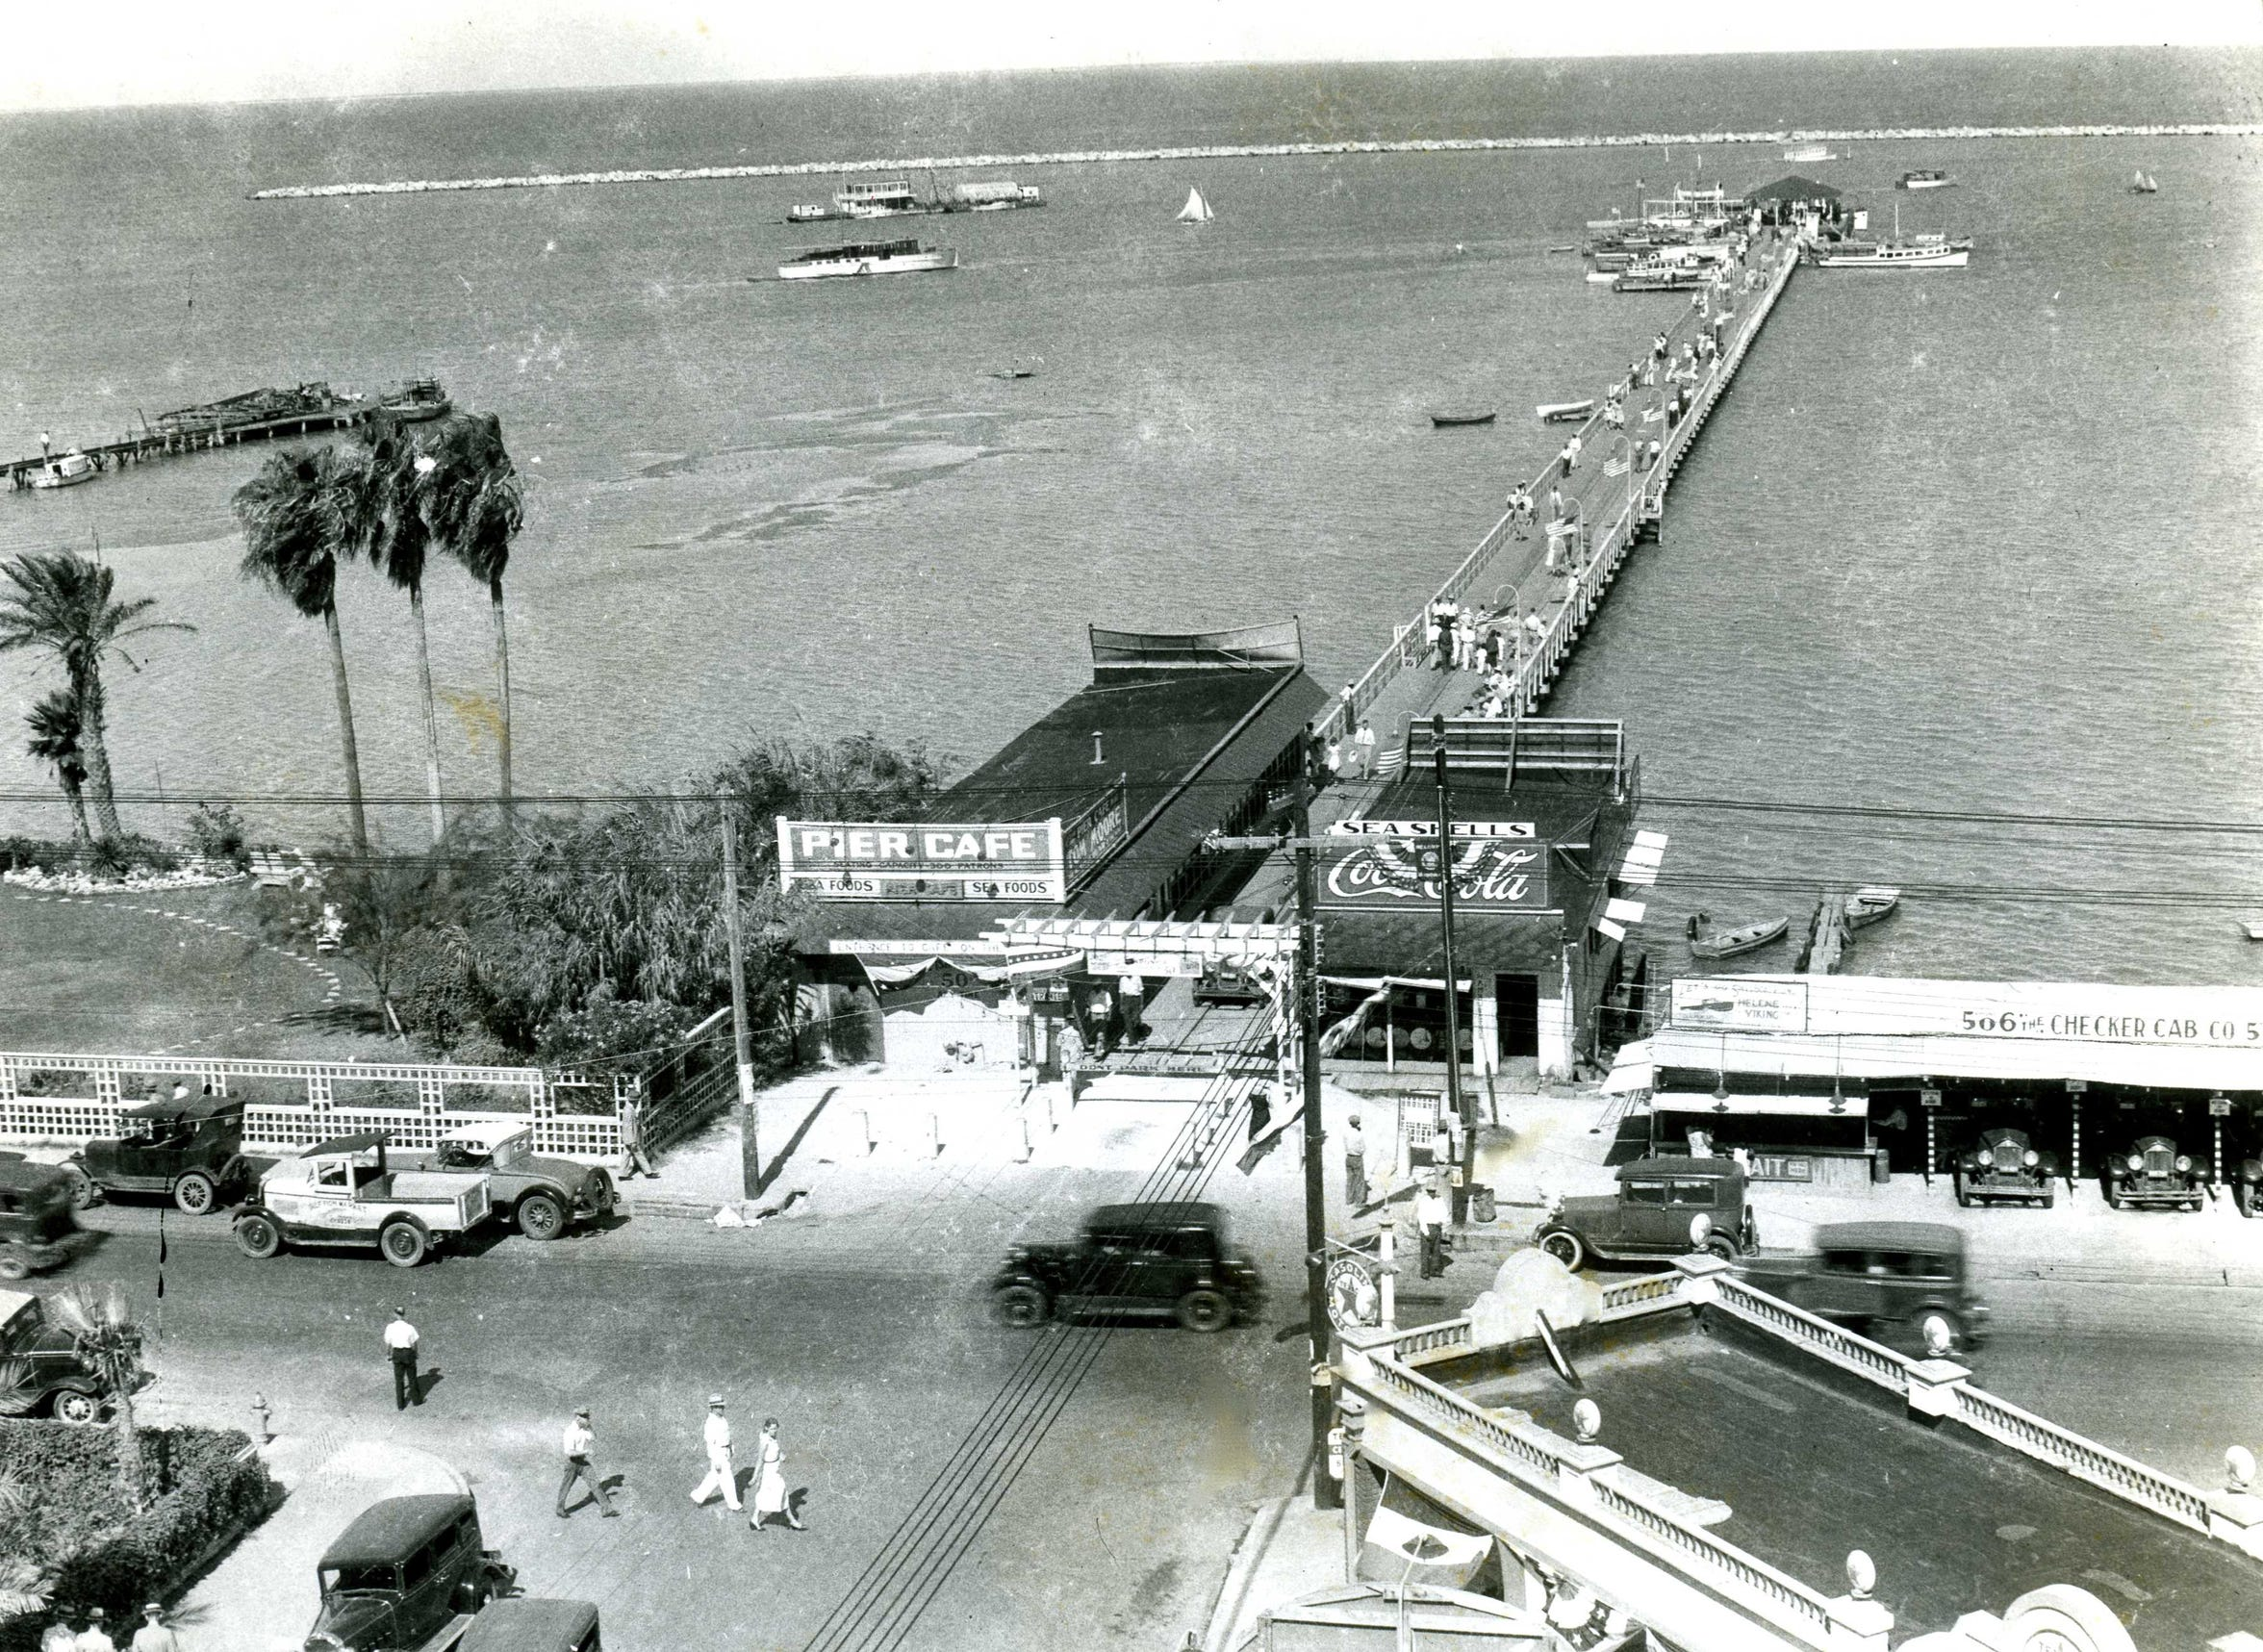 The original Pier Cafe in July 1932. The building, a remodeled fisherman's shack, sat at the foot of the city pleasure pier. Owner John Govatos built a new stucco building in 1932 to accomodate his growing clientele. The restaurant closed after the city began construction on the seawall in 1939.